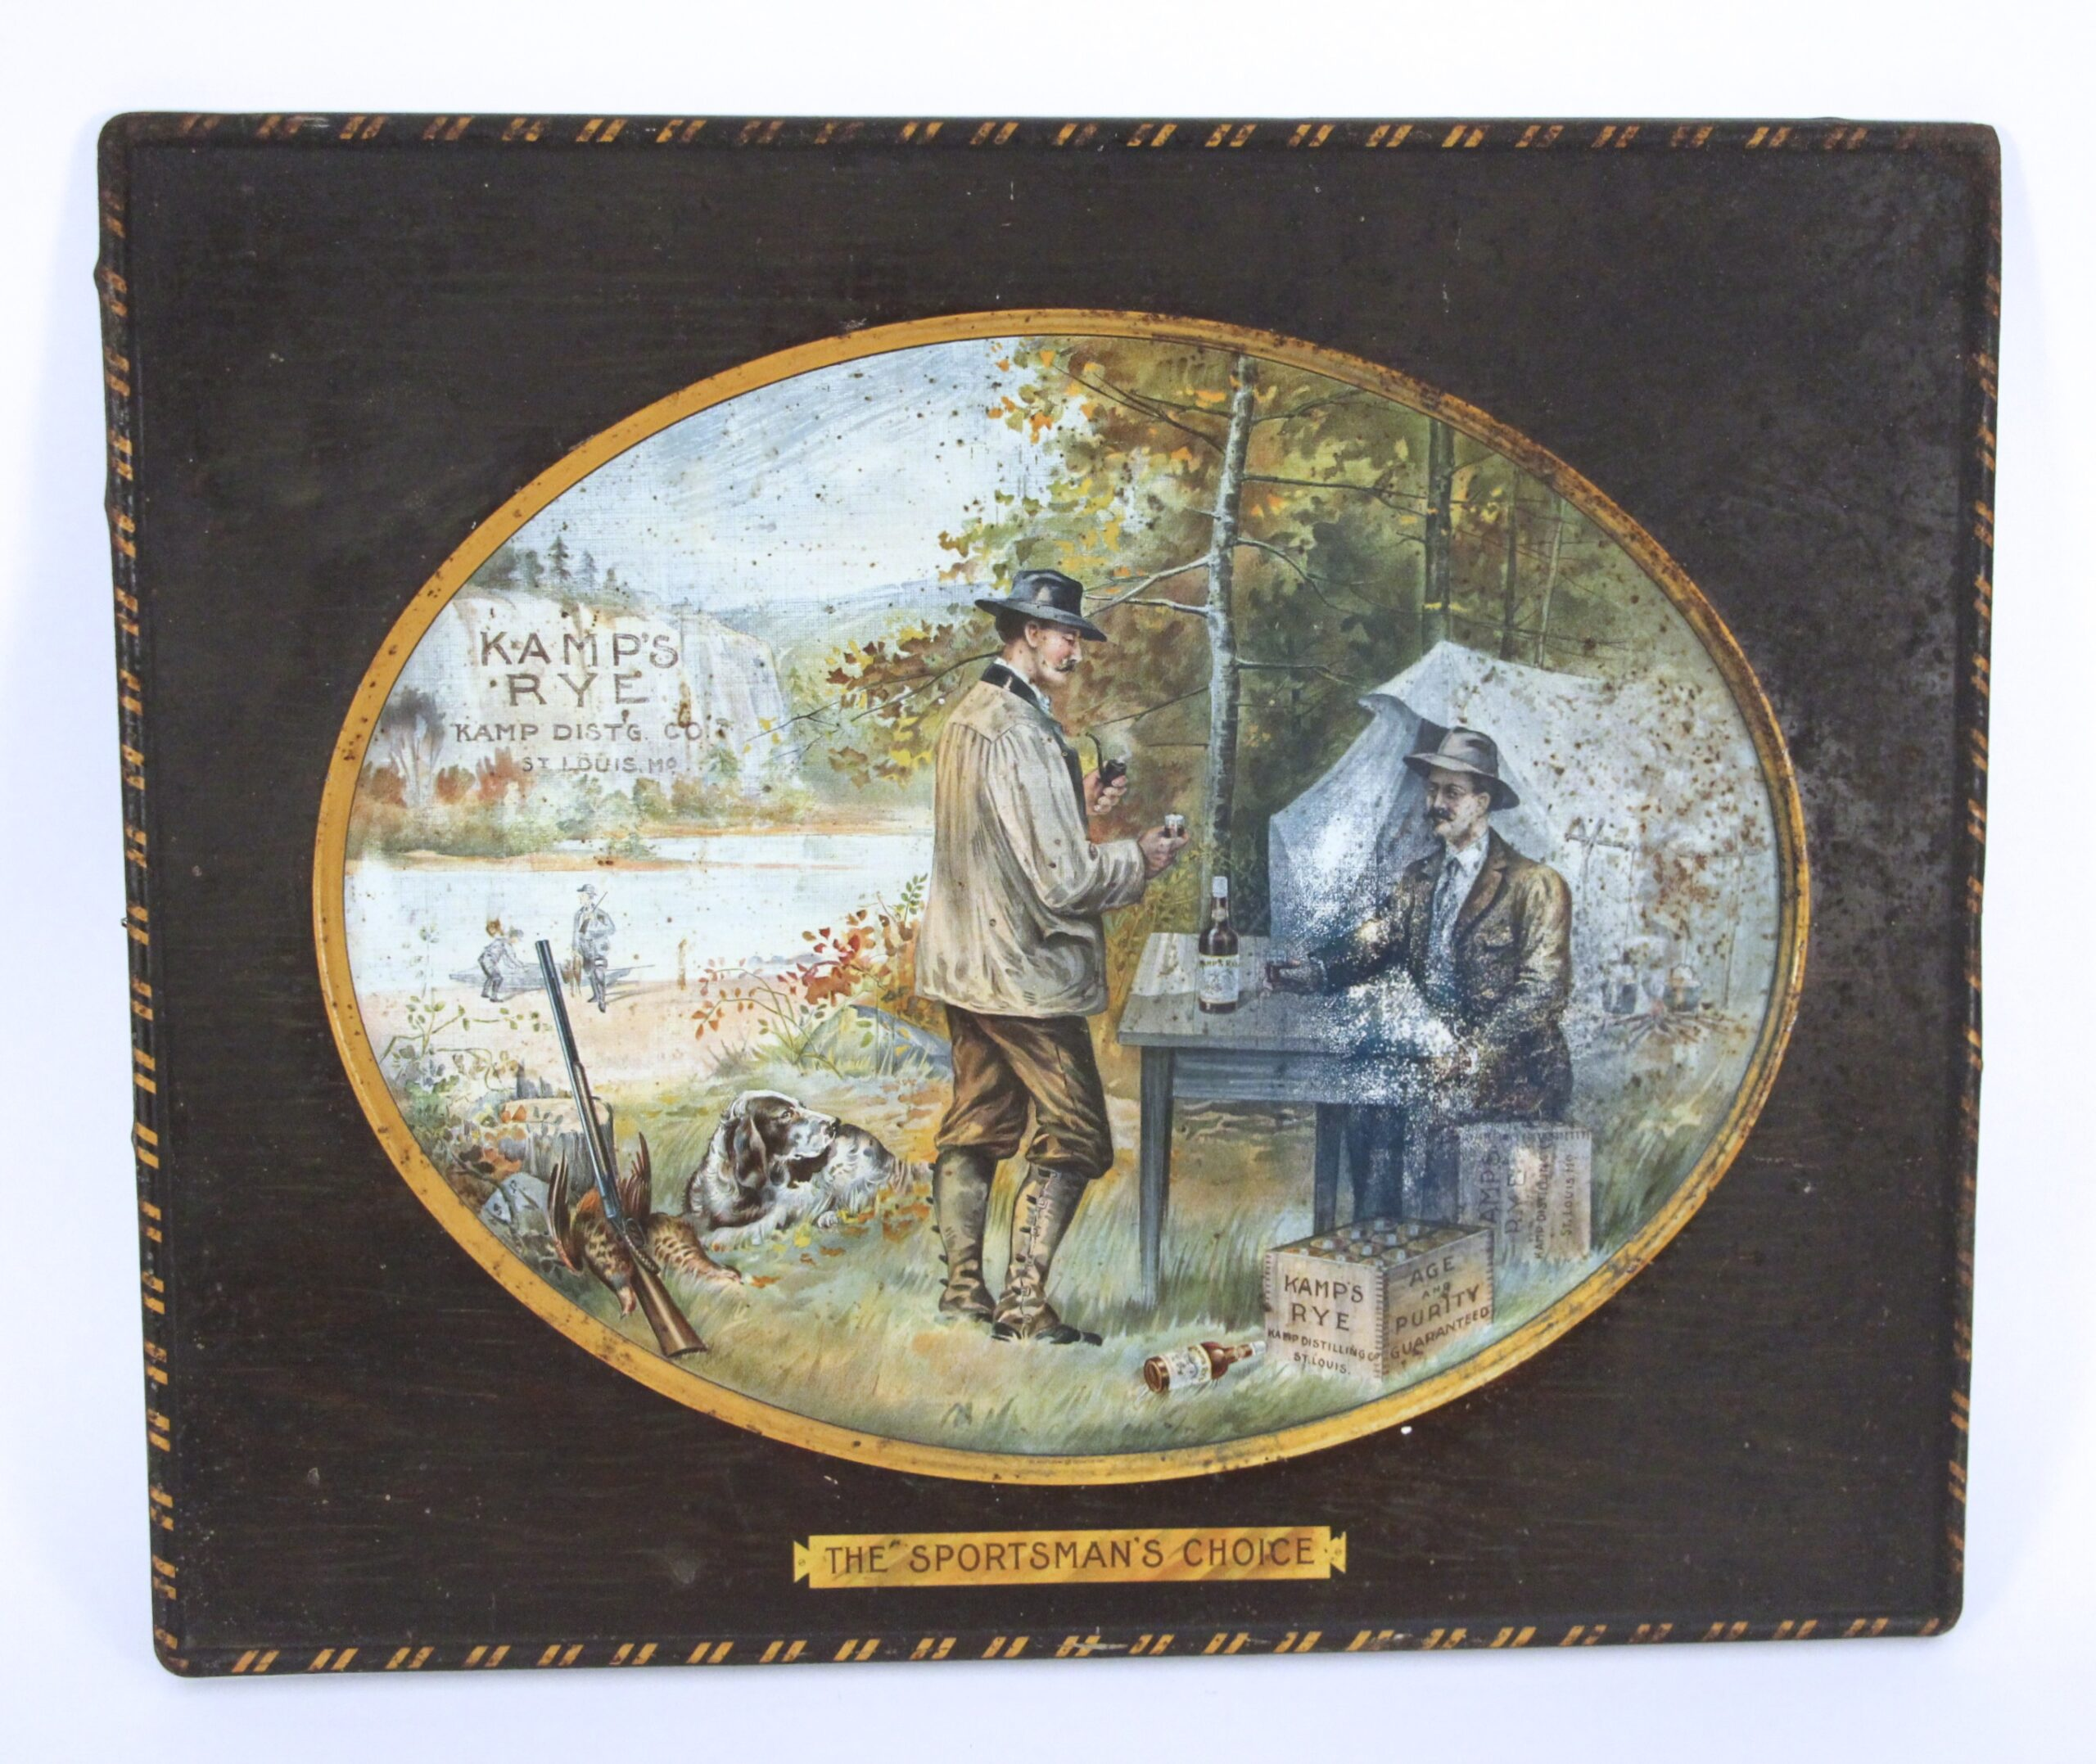 Kamp's Distilling Co, St. Louis, MO. Rye Self Framed Tin Sign. Circa 1900